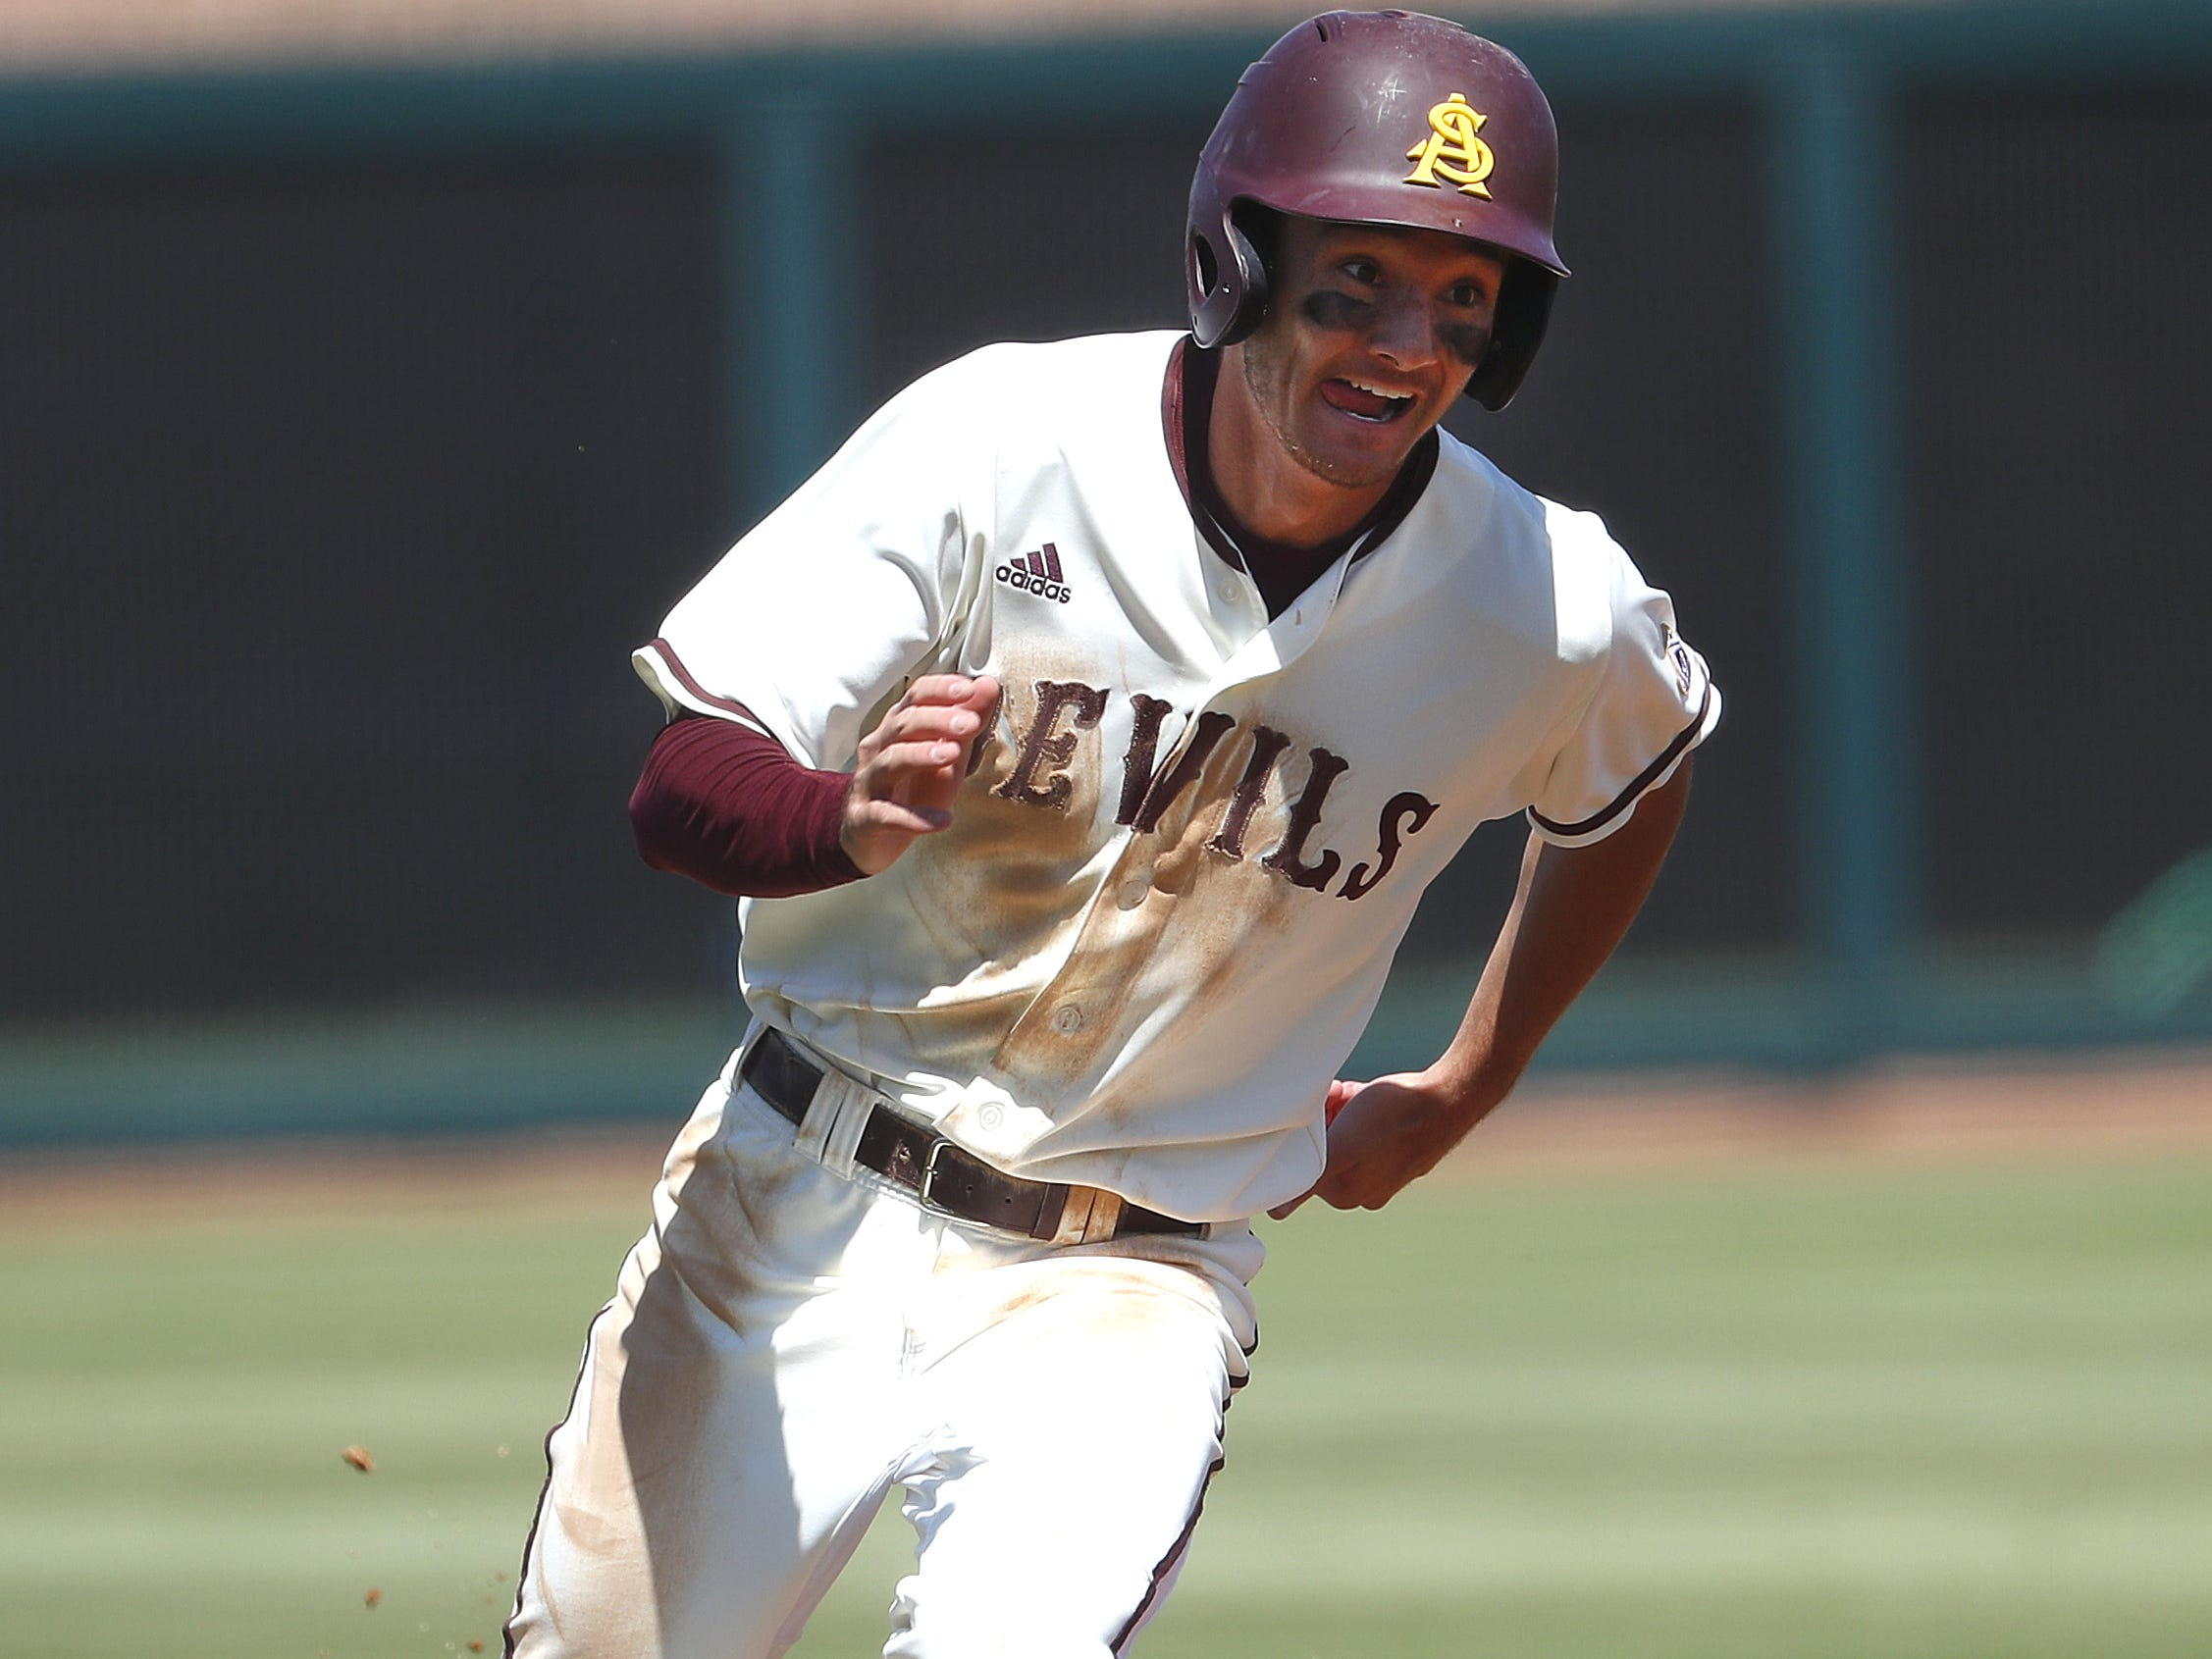 ASU's Alika Williams (5) rounds third past Arizona's Nick Quintana (13) after an error from shortstop Jacob Blas during a game at Phoenix Municipal Stadium in Phoenix, Ariz. on March 30, 2019.